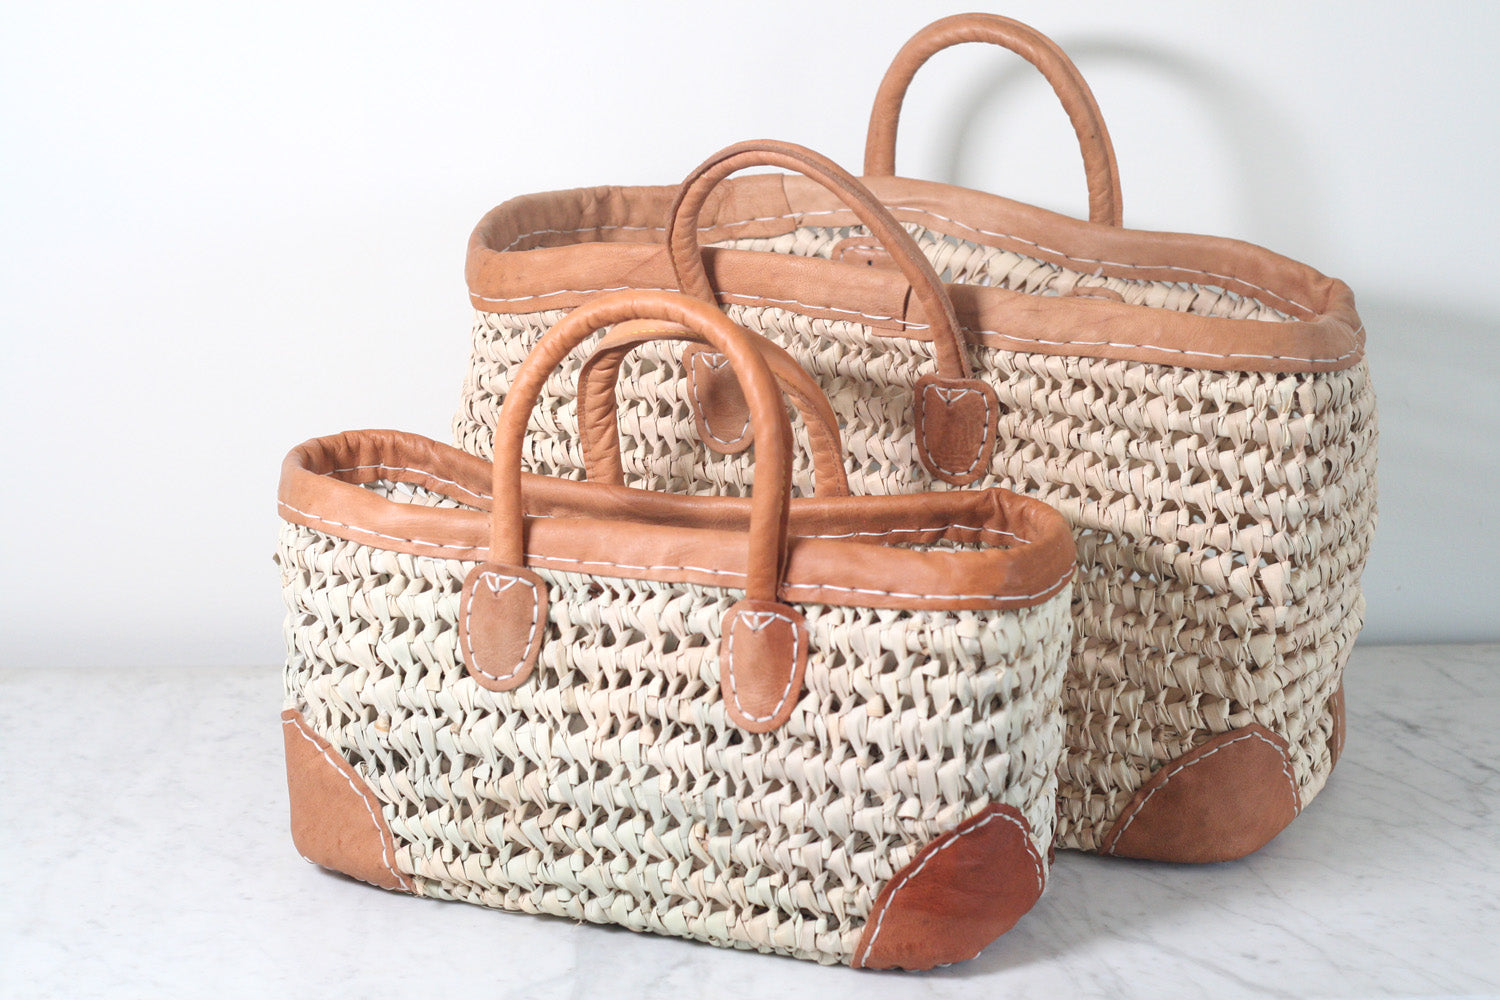 Leather Trimmed Market & Storage BasketsLeather Trimmed Market & Storage Baskets